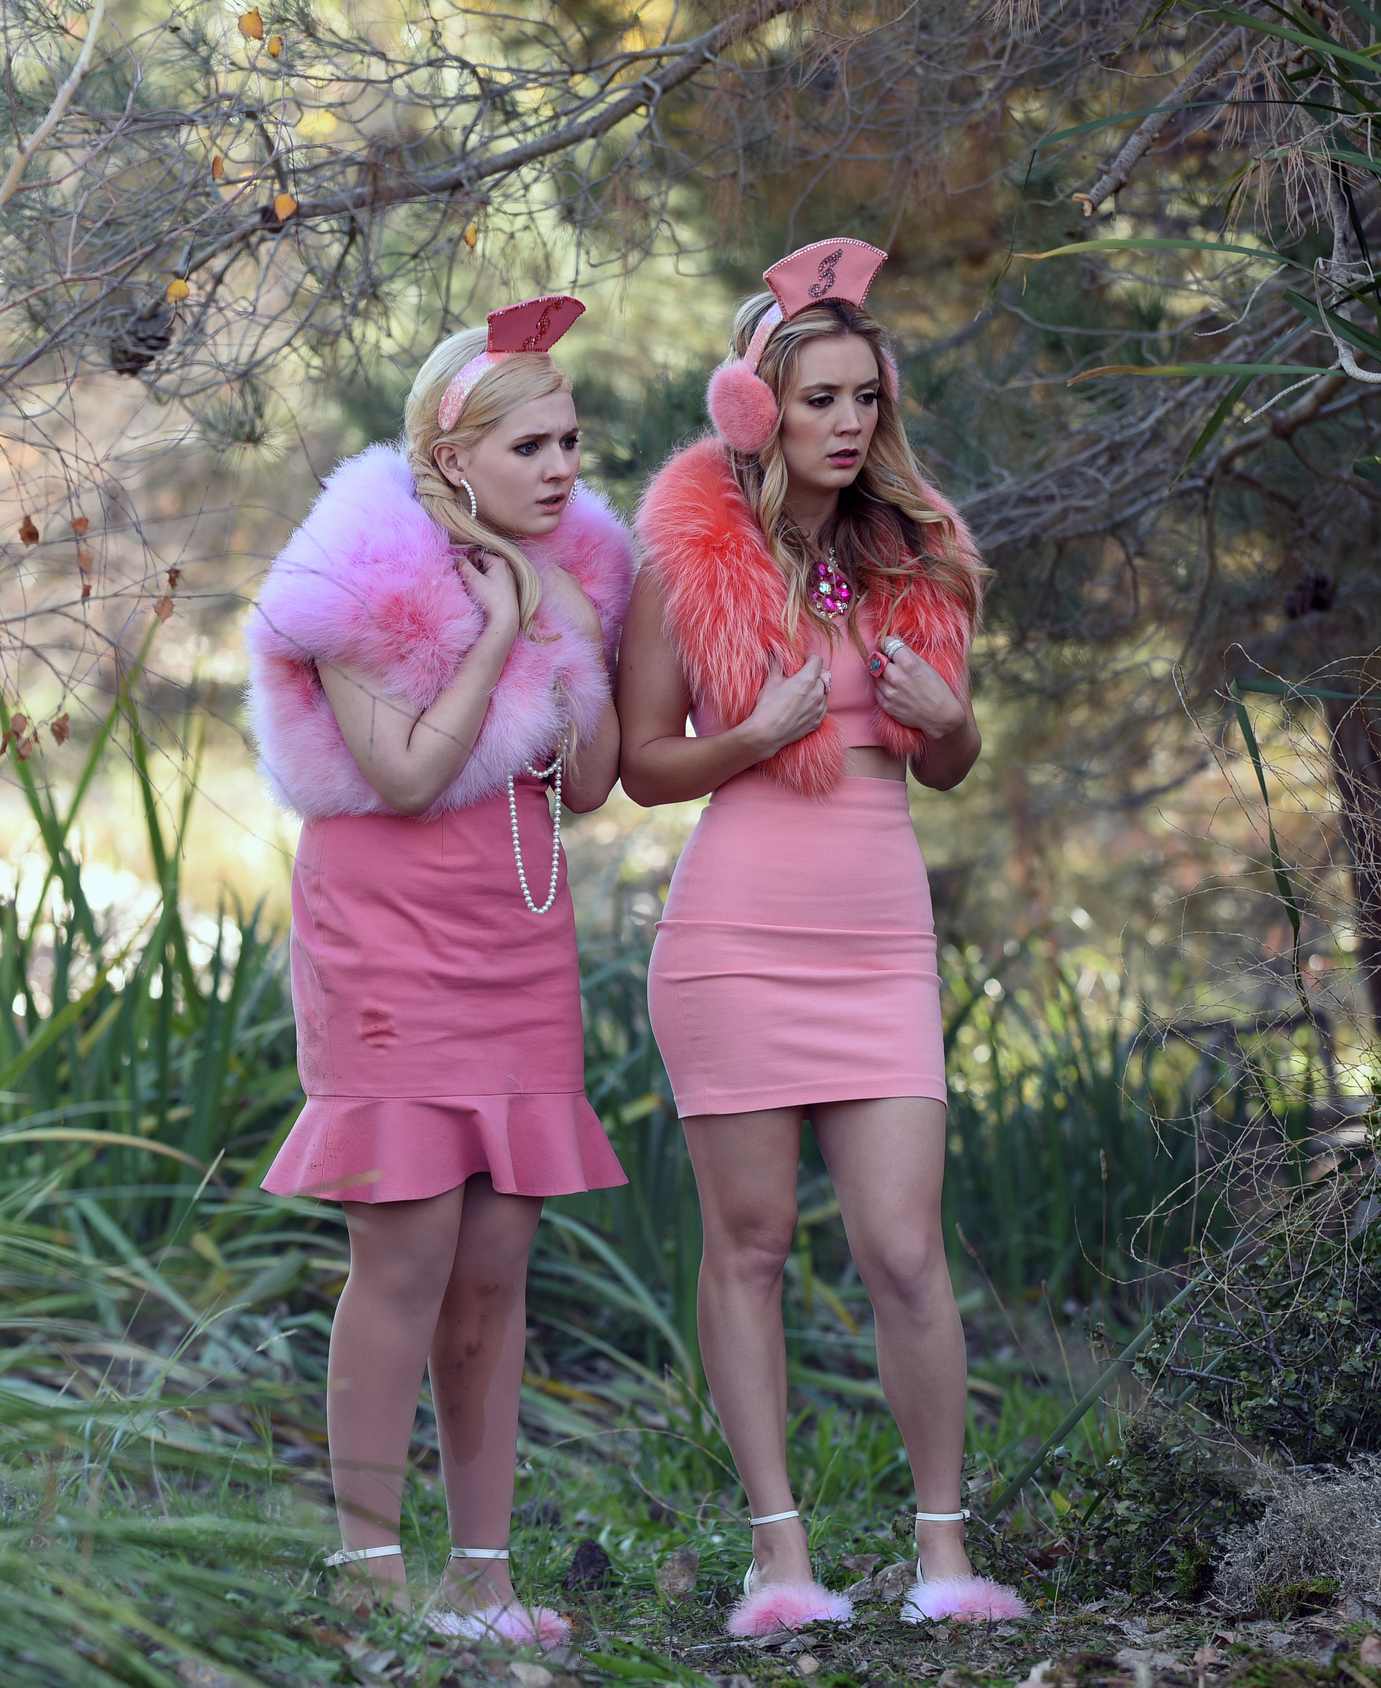 Scream Queens 210-05